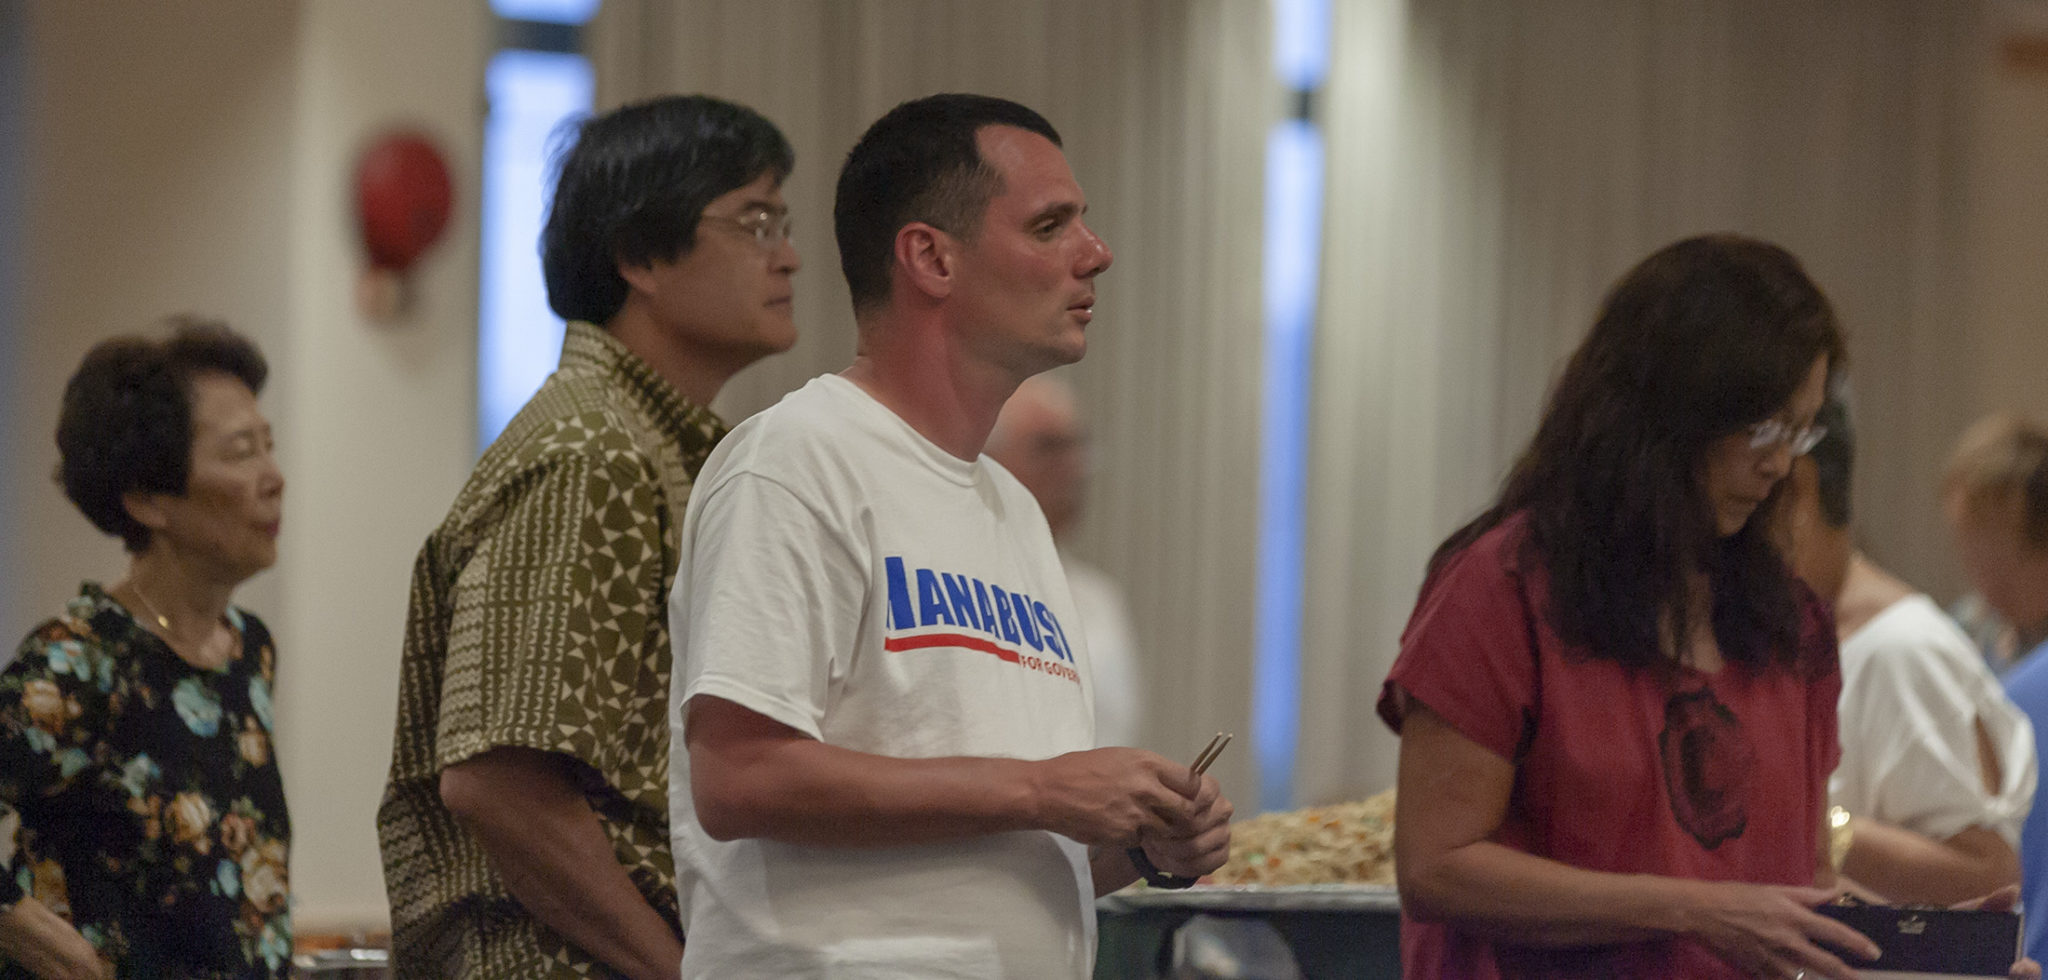 <p>Joseph Mangi, center, of Waikiki, is among the supporters of Congresswoman Colleen Hanabusa who aren&#8217;t enthused by the early results showing her trailing Gov. David Ige.</p>